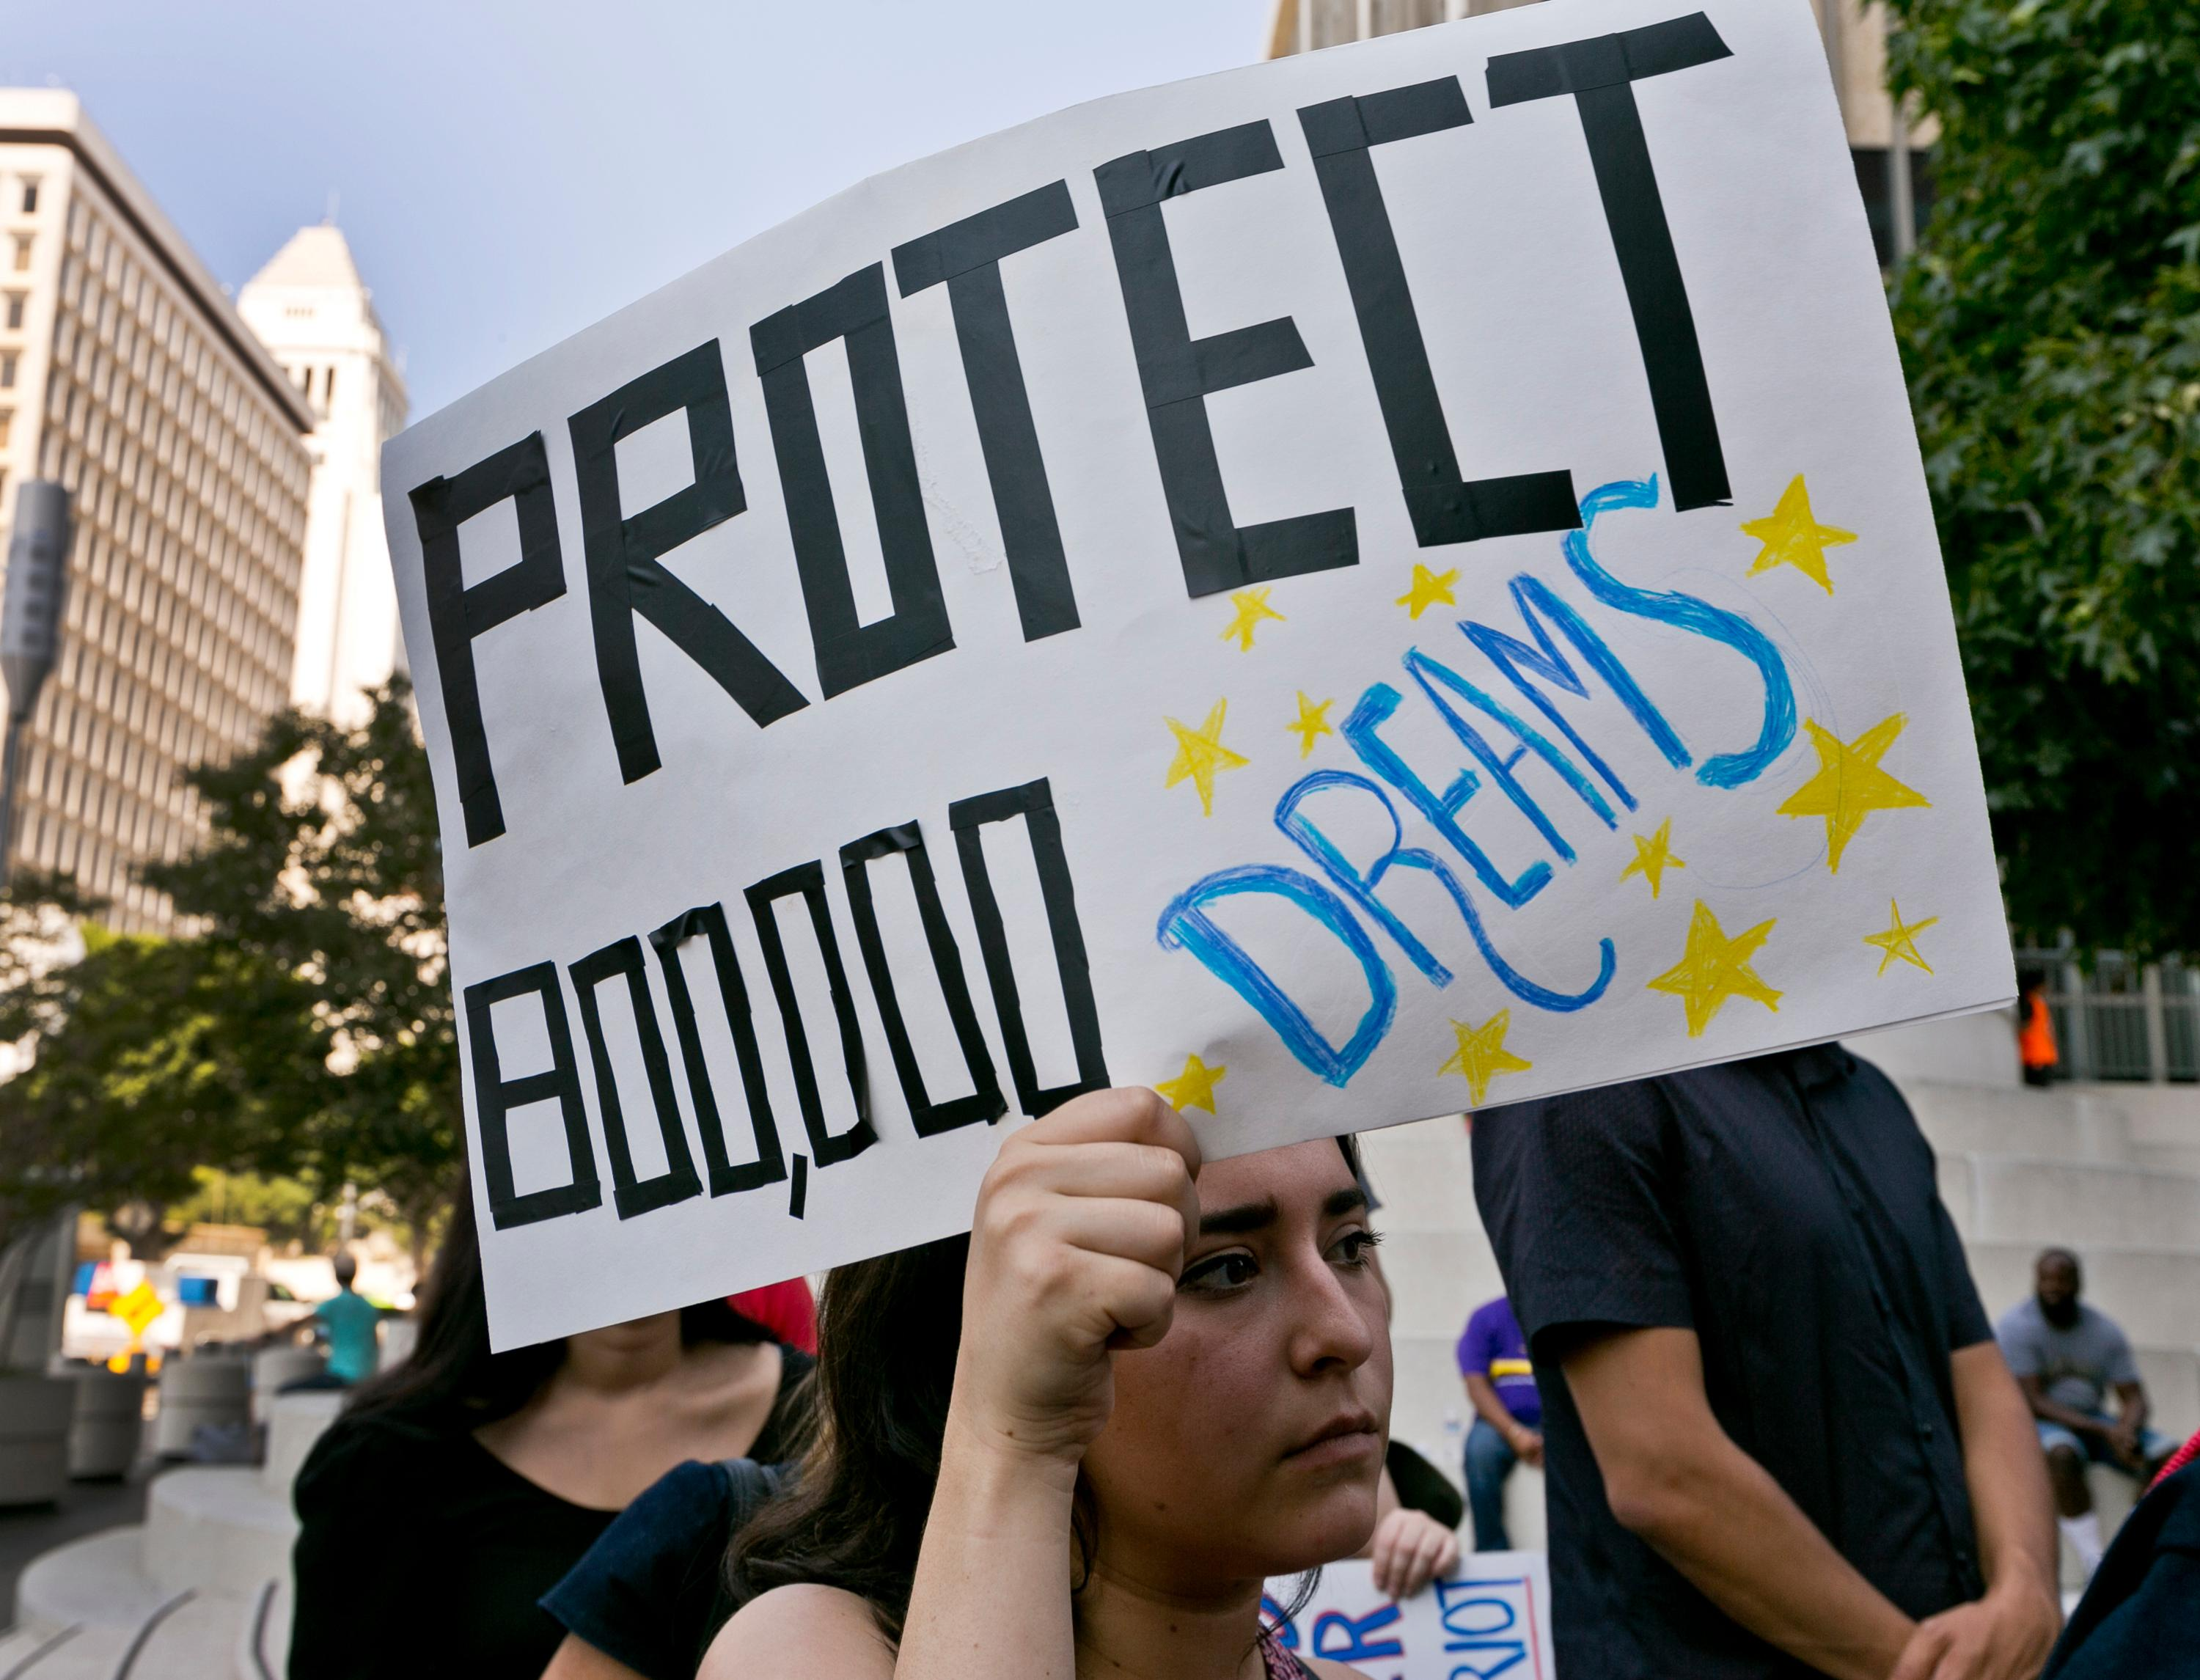 FILE - In this Sept. 1, 2017 file photo, a woman joins a rally in support of the Deferred Action for Childhood Arrivals, or DACA program, outside the Edward Roybal Federal Building in downtown Los Angeles Friday, Sept. 1, 2017.{&amp;nbsp;} (AP Photo/Damian Dovarganes, File)<p></p>